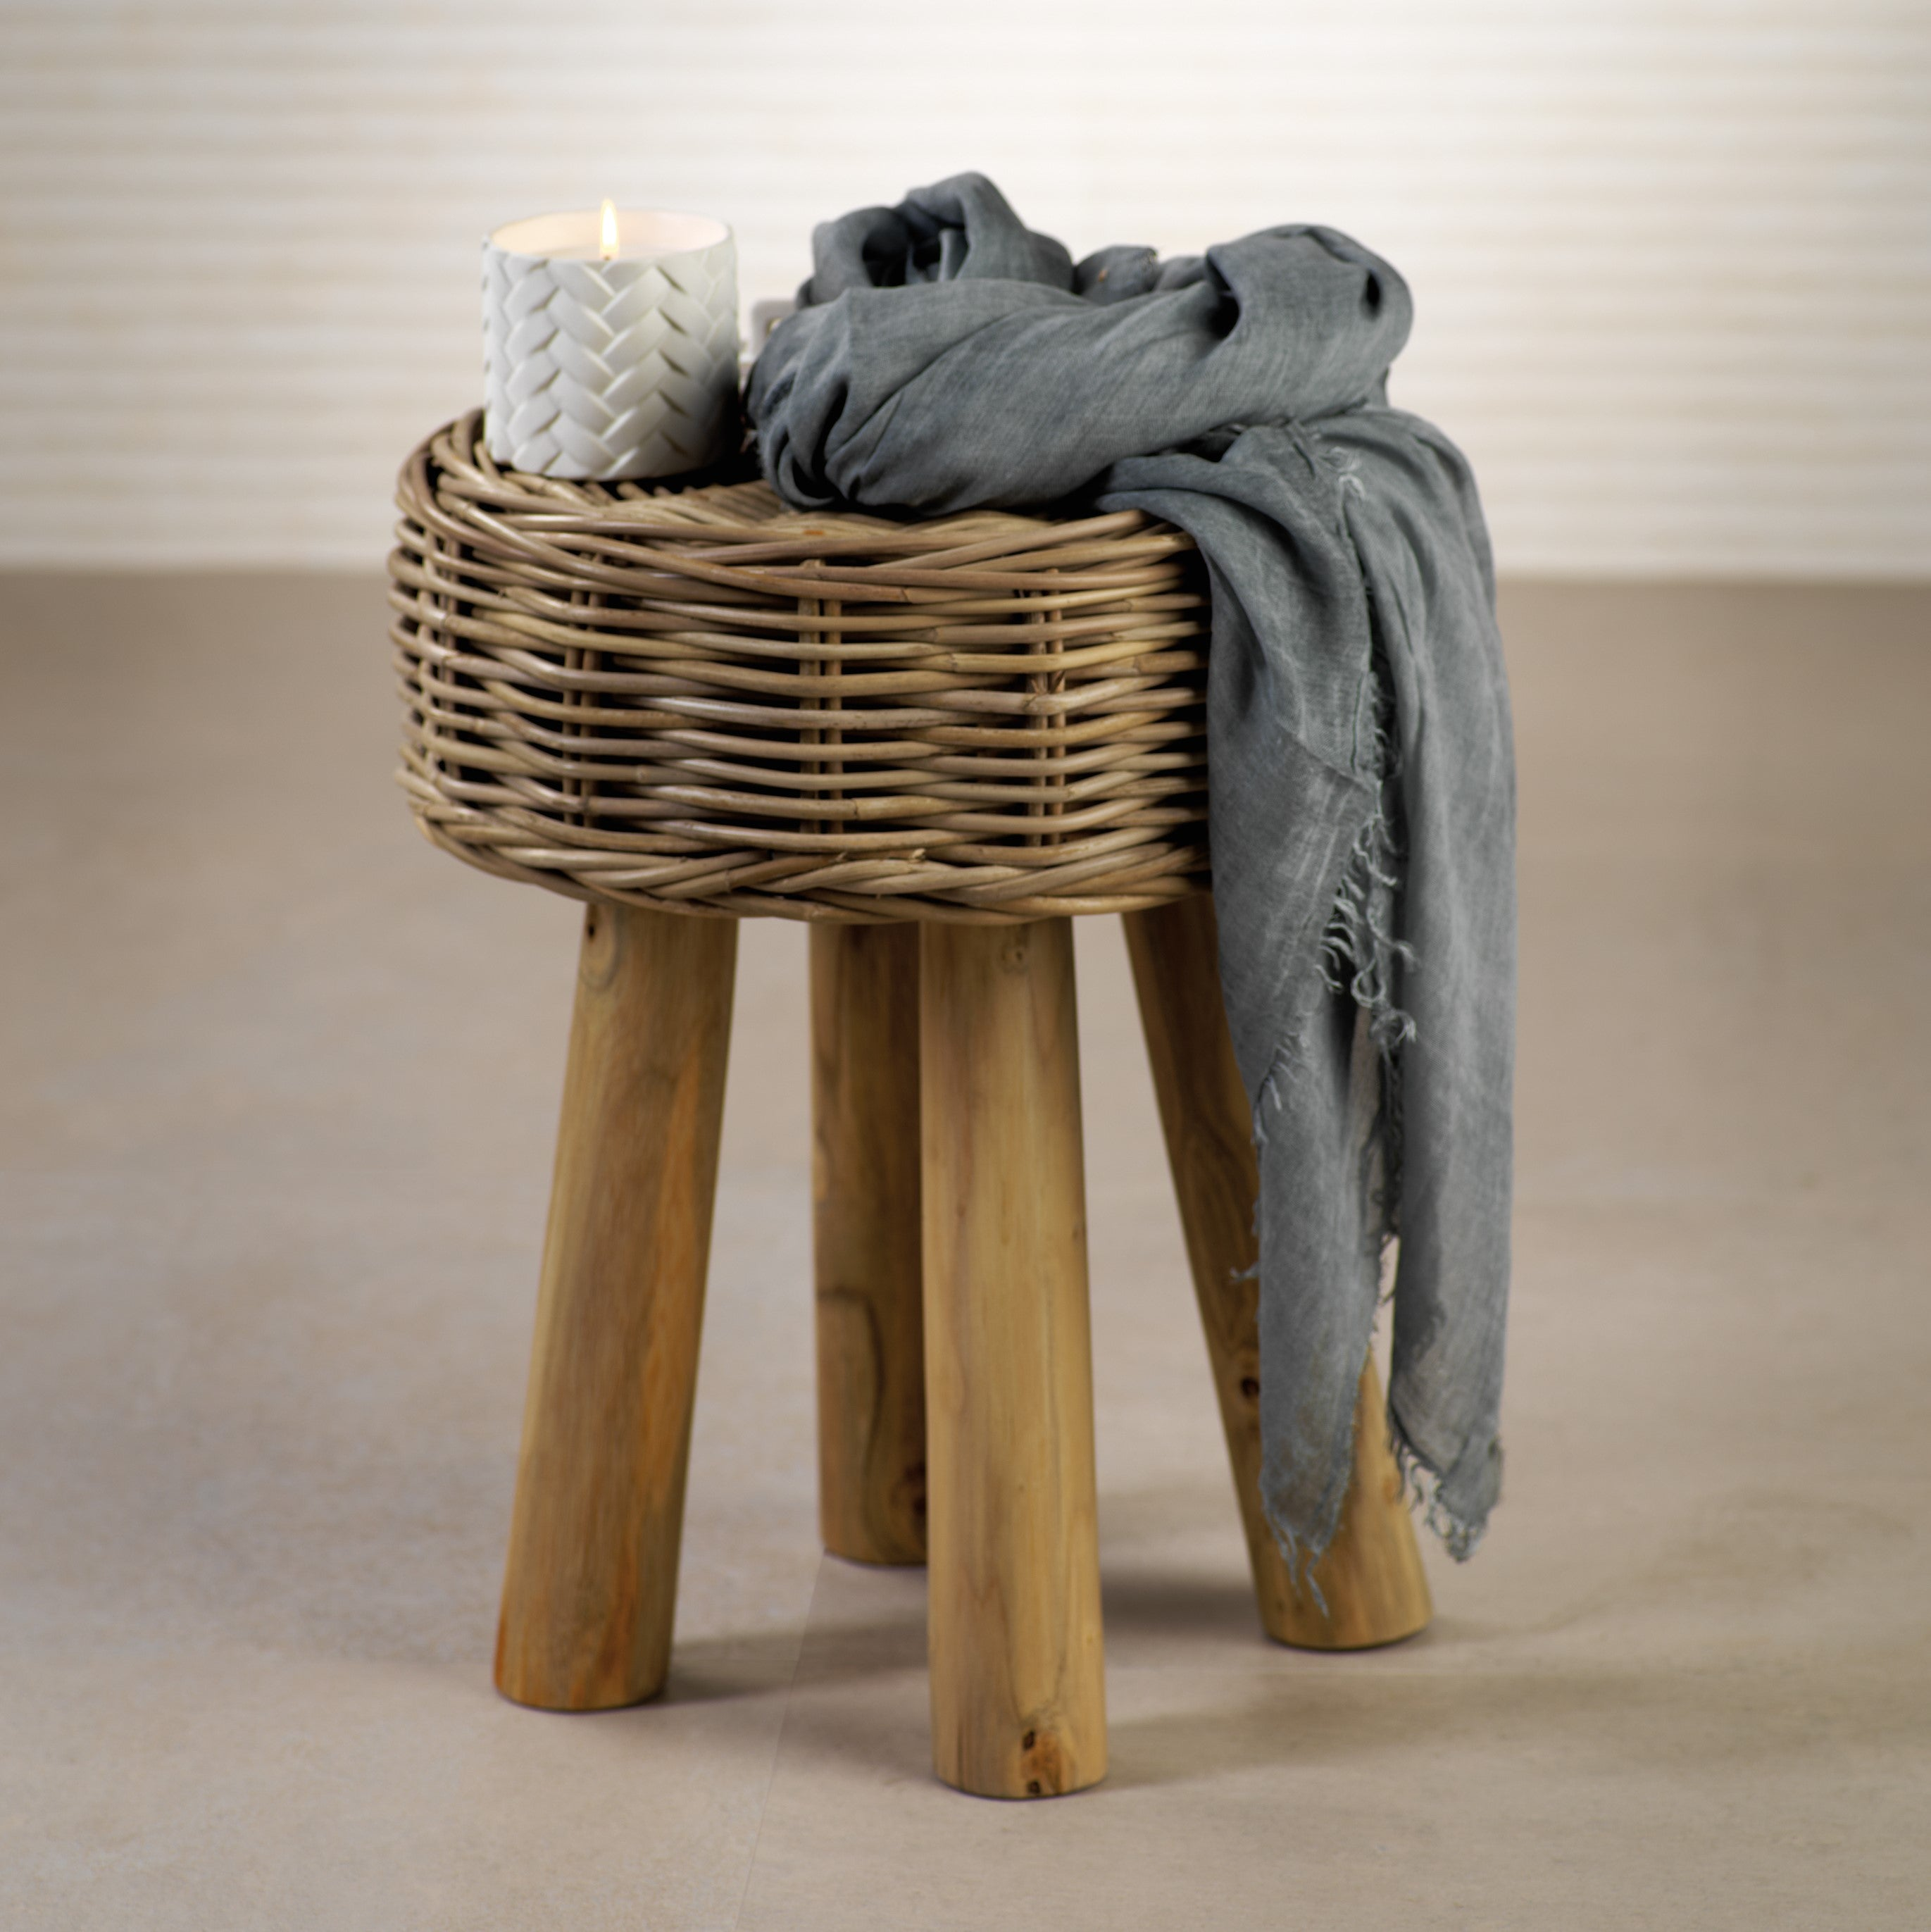 Rattan and Teakwood Stool